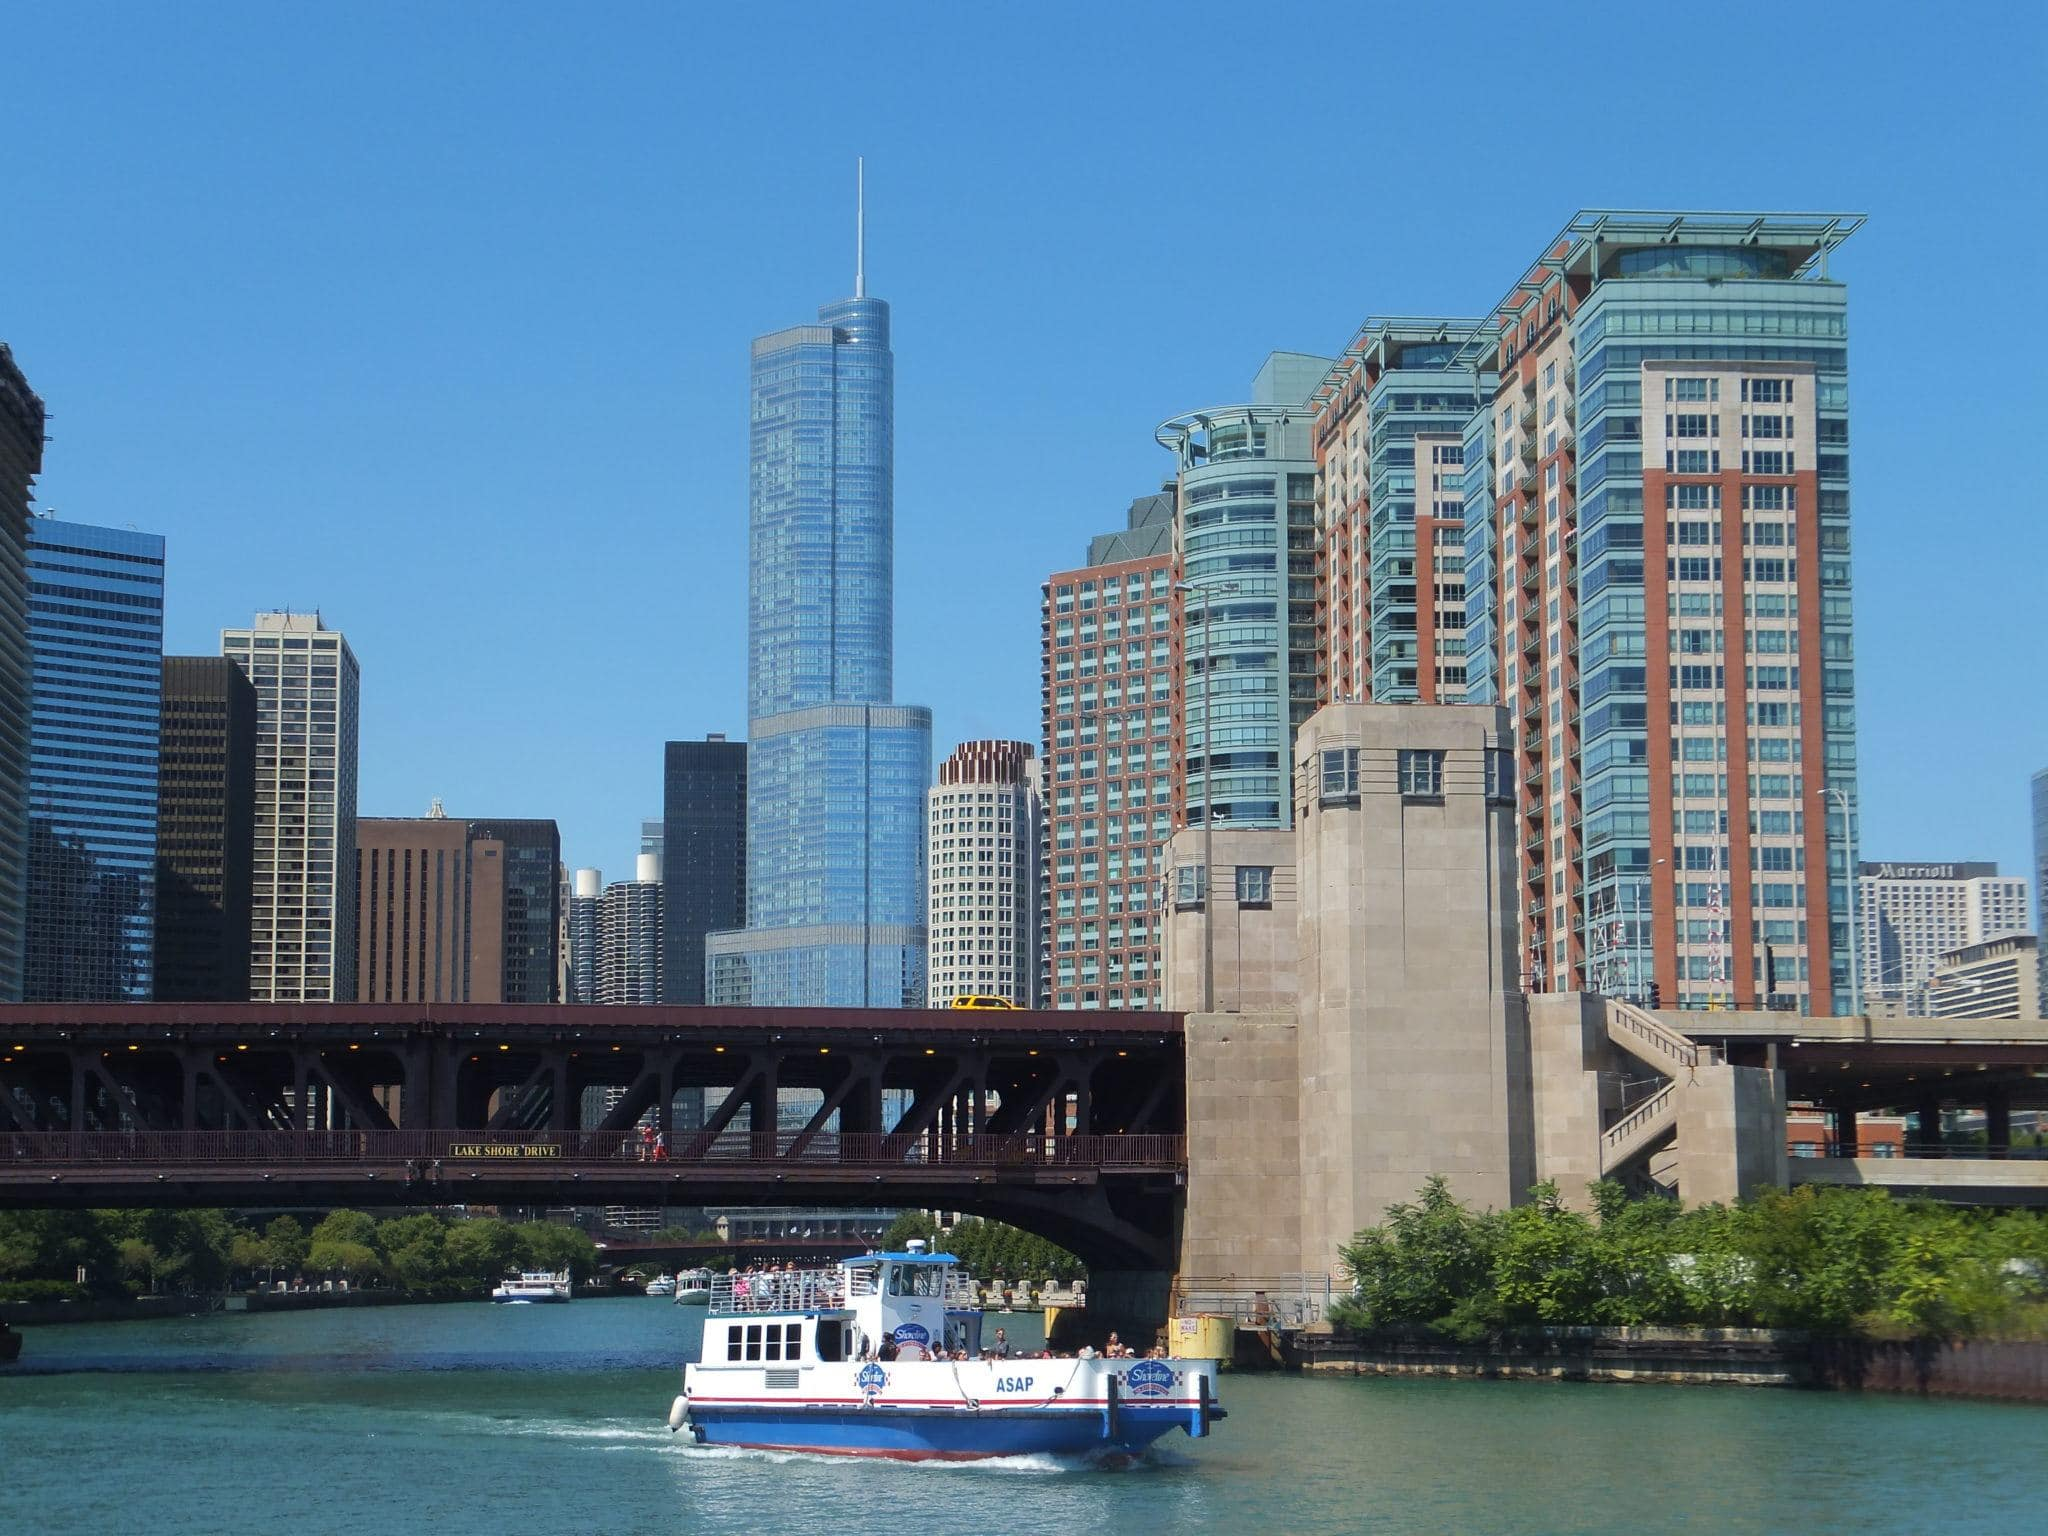 A cruise on the river is the perfect way to see Chicago